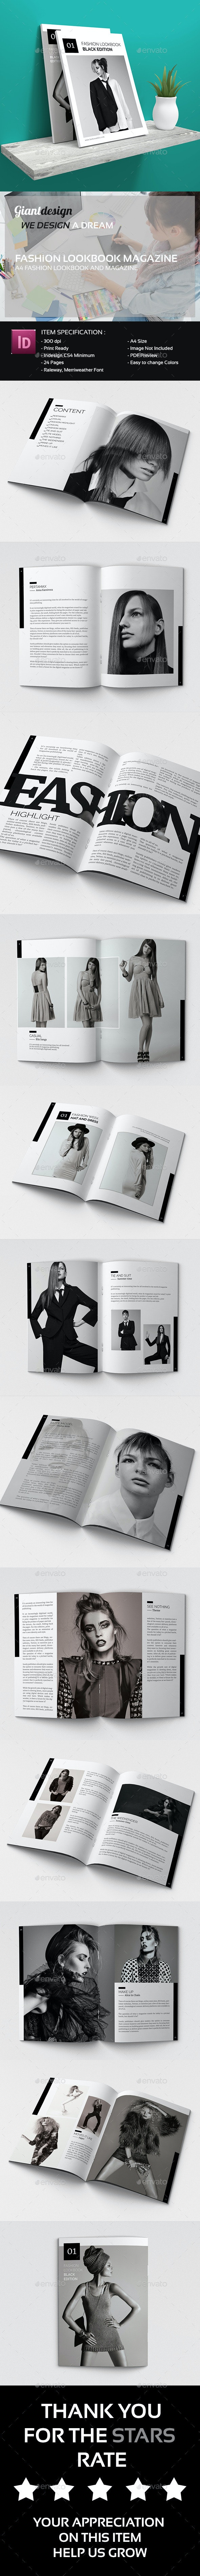 Fashion Lookbook And Magazines - Catalogs Brochures